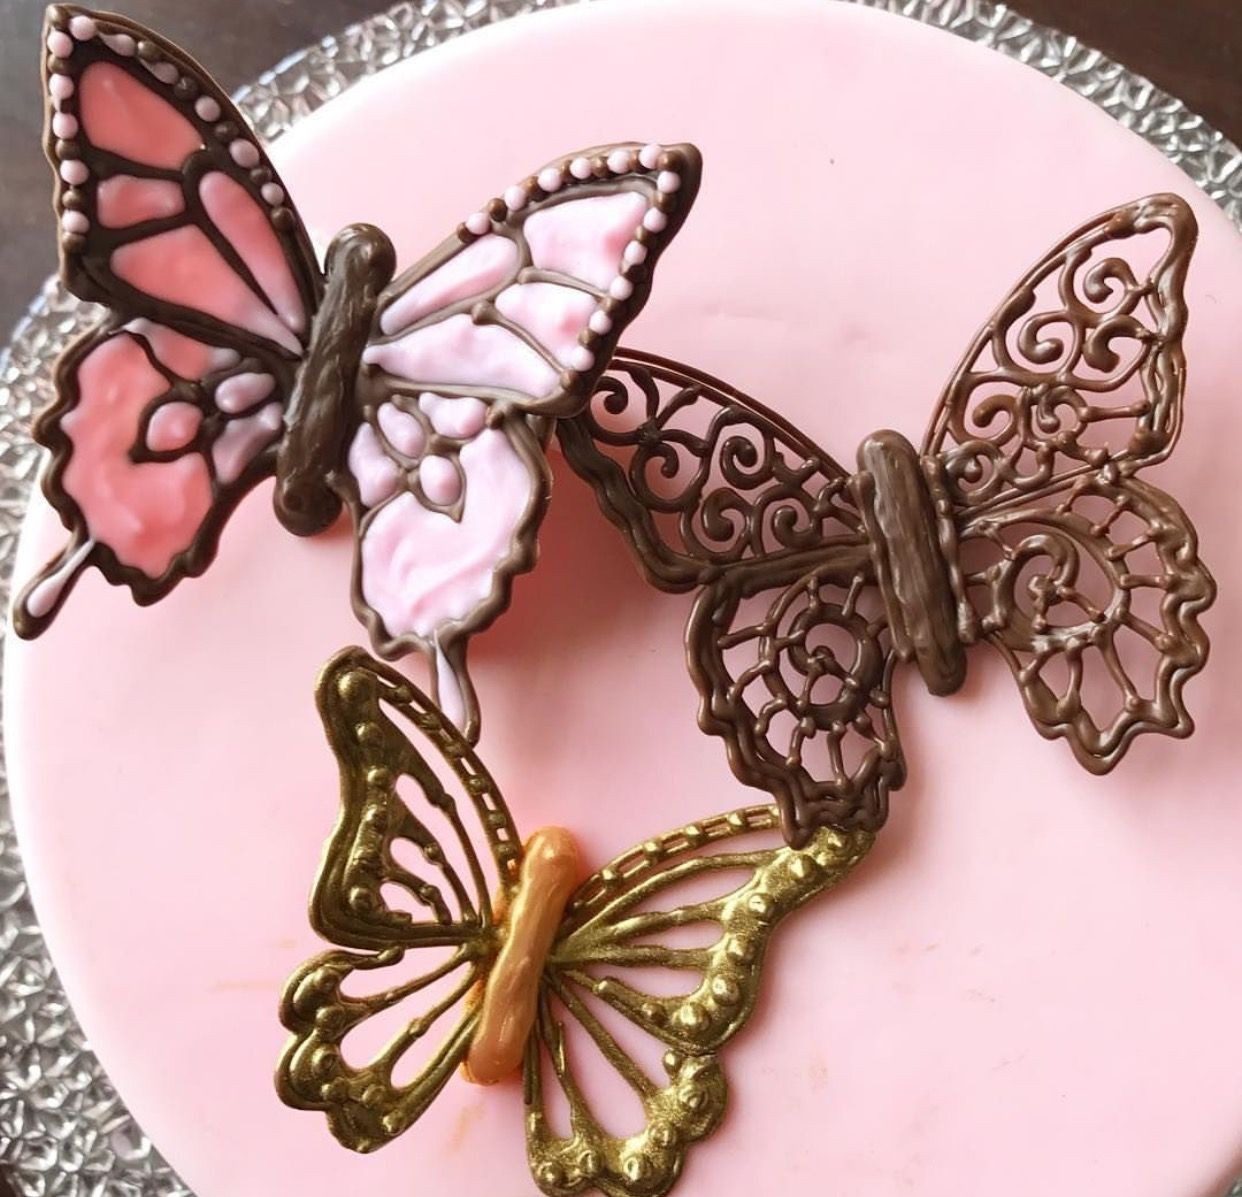 How To Make Chocolate Butterflies Using Cooking Chocolate Or Wilton